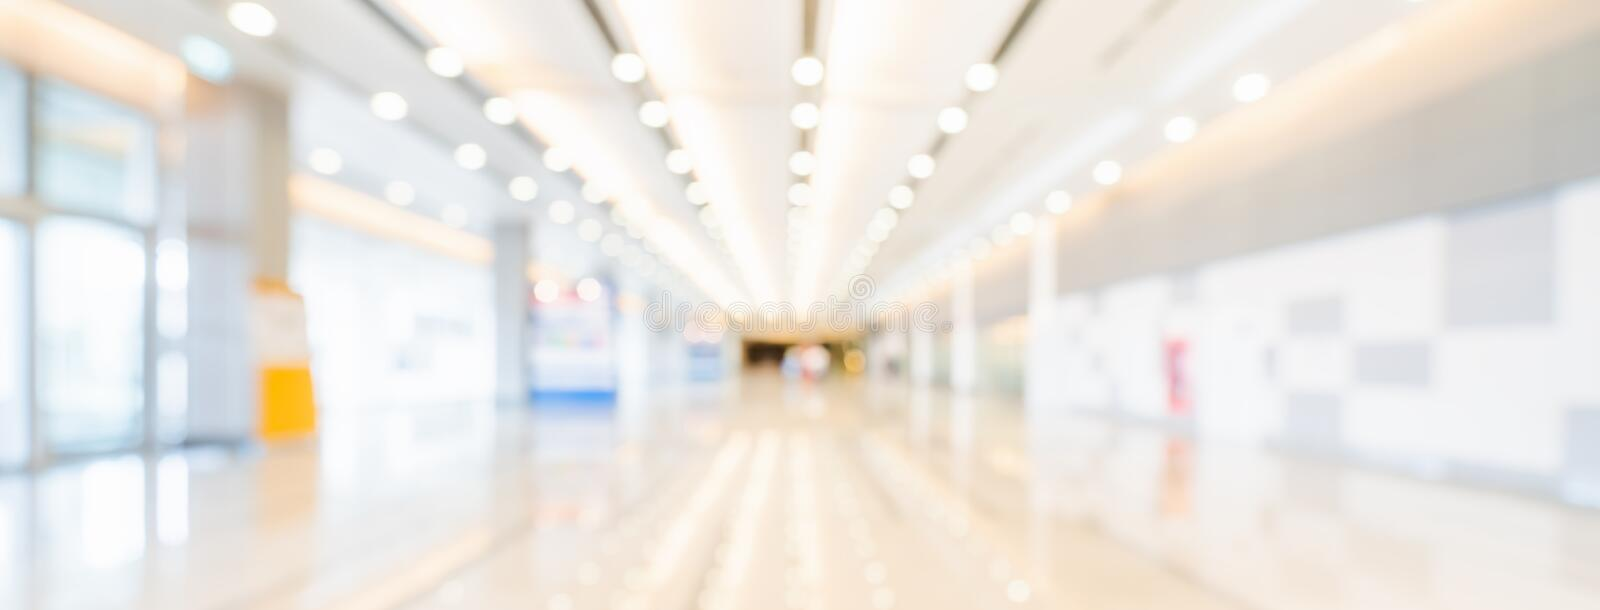 Blurred bokeh panoramic banner background of exhibition hall or convention center hallway. Business trade show event royalty free stock images